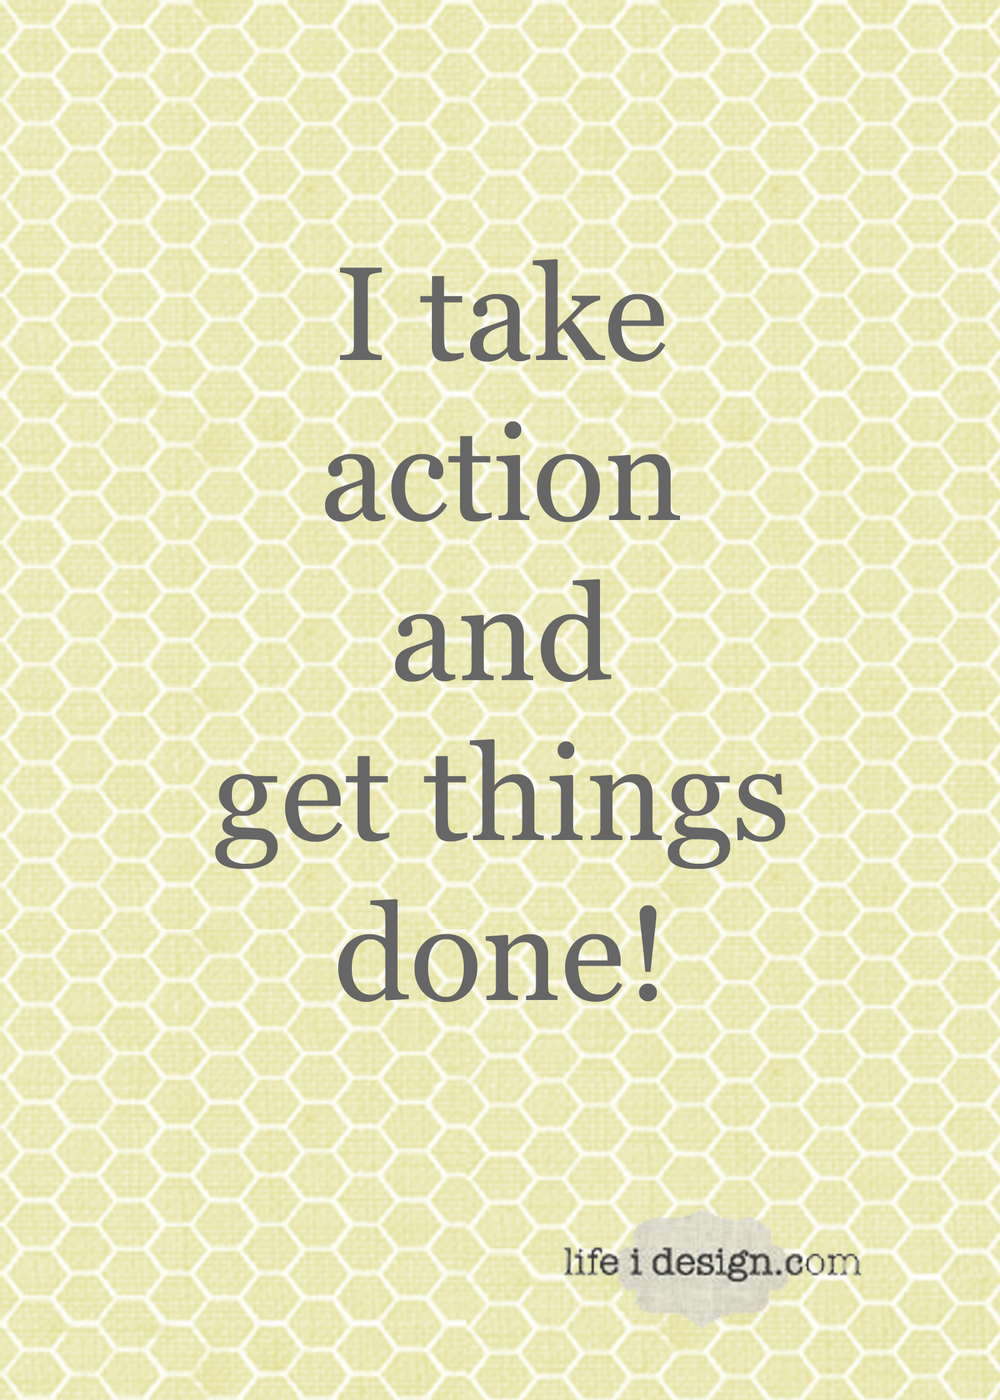 I get things done